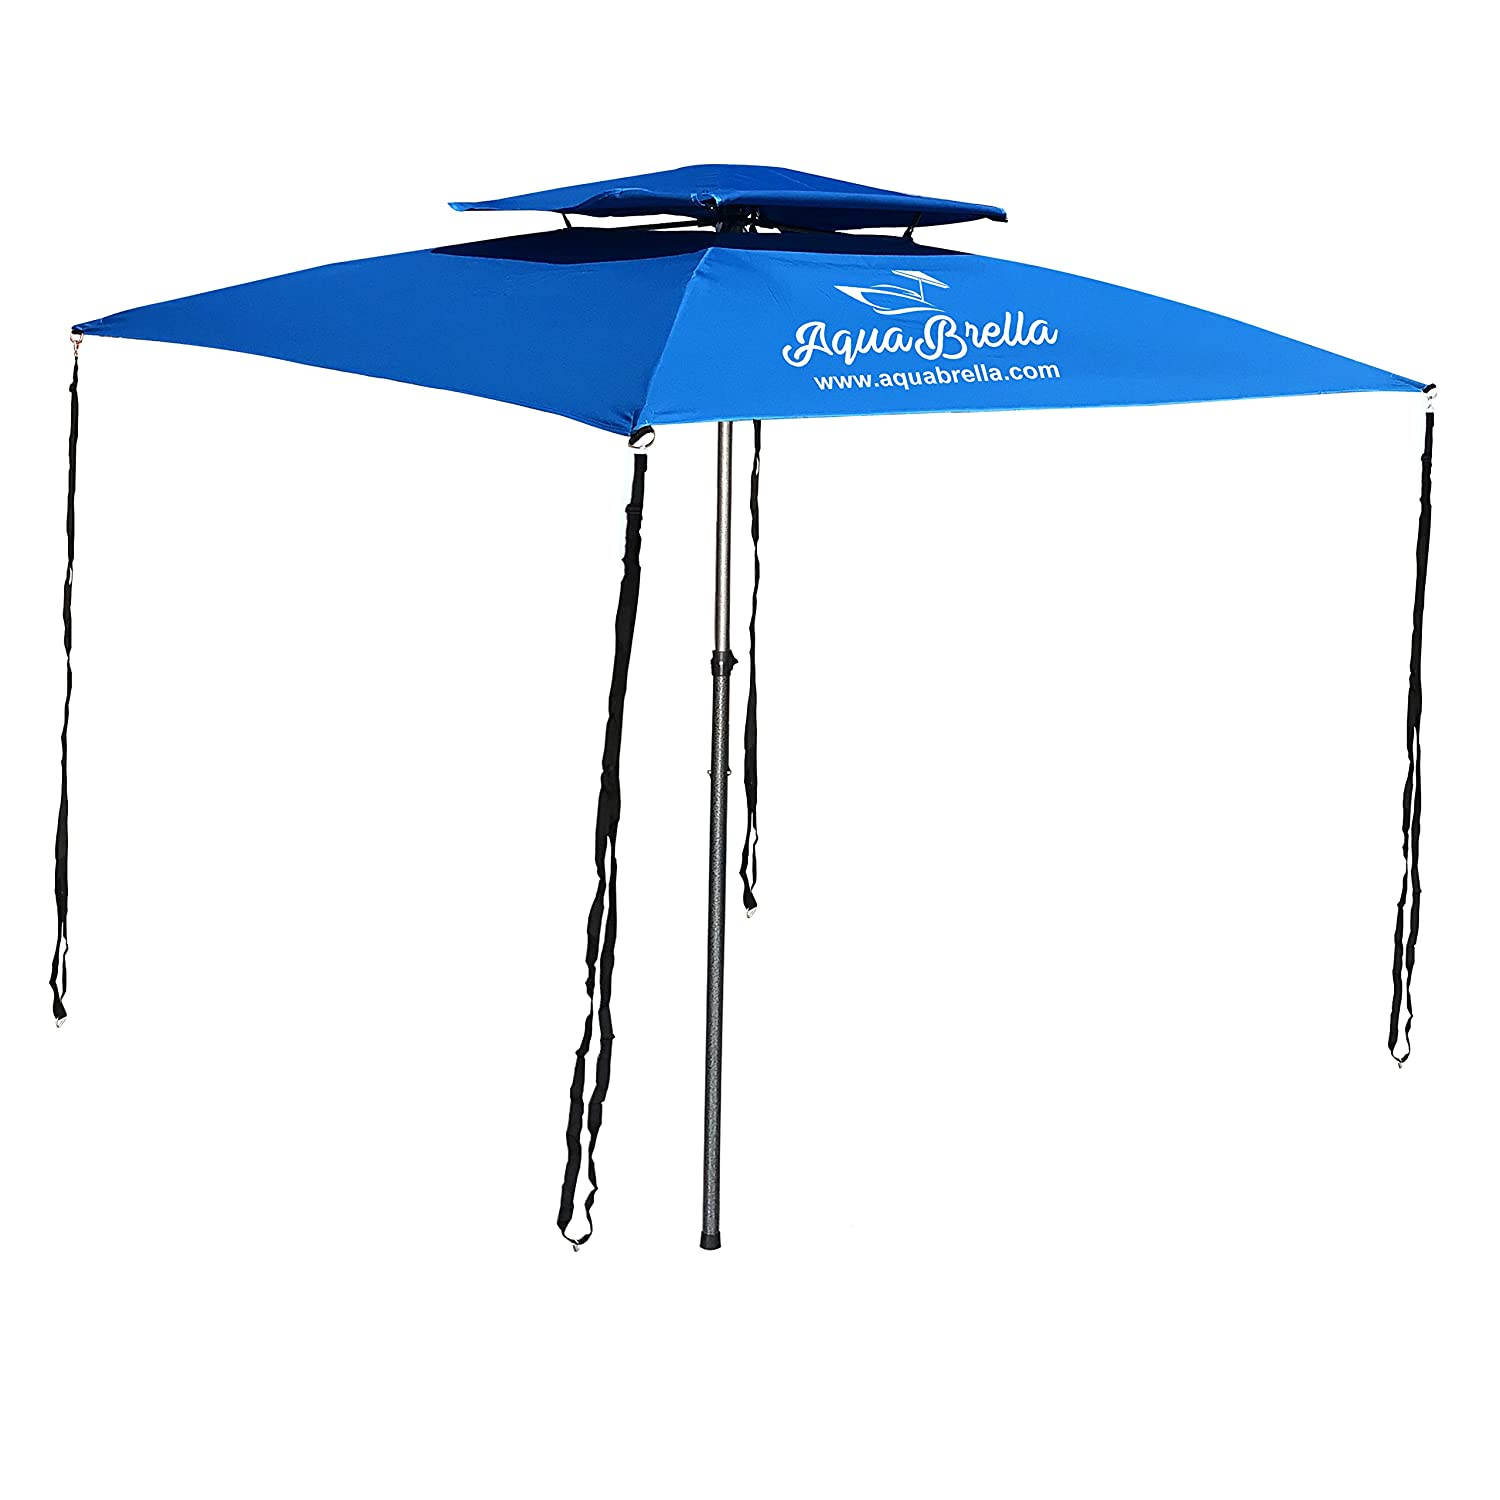 The Portable Bimini Boat Top Cover Canopy Large Size 6 Foot X 6 Foot EasyGoProducts AquaBrella